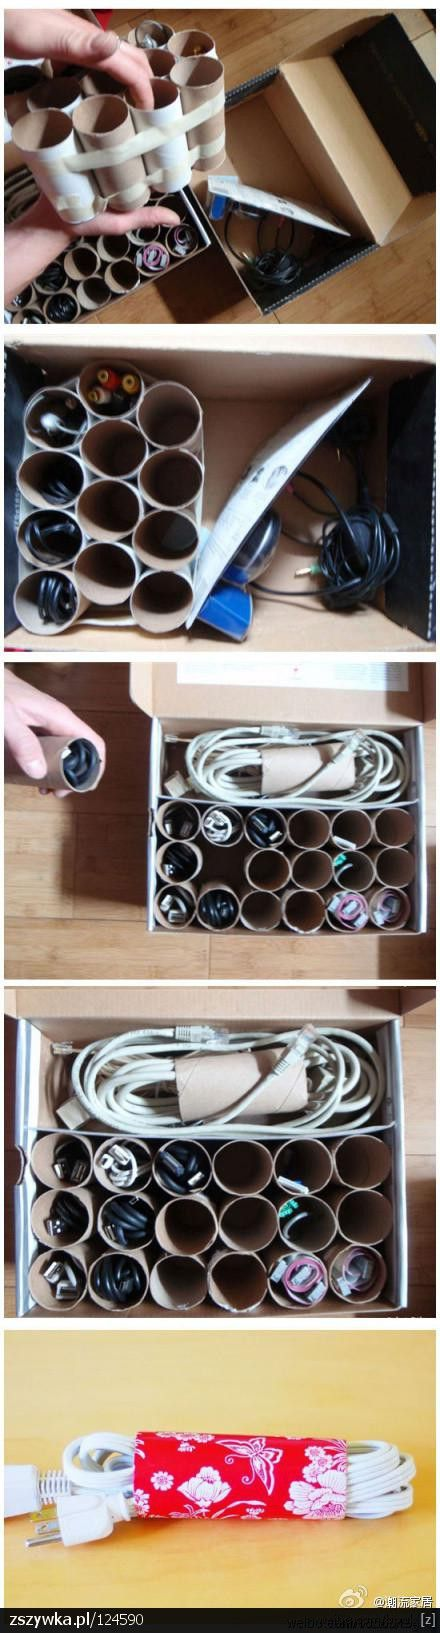 For cables and cords.